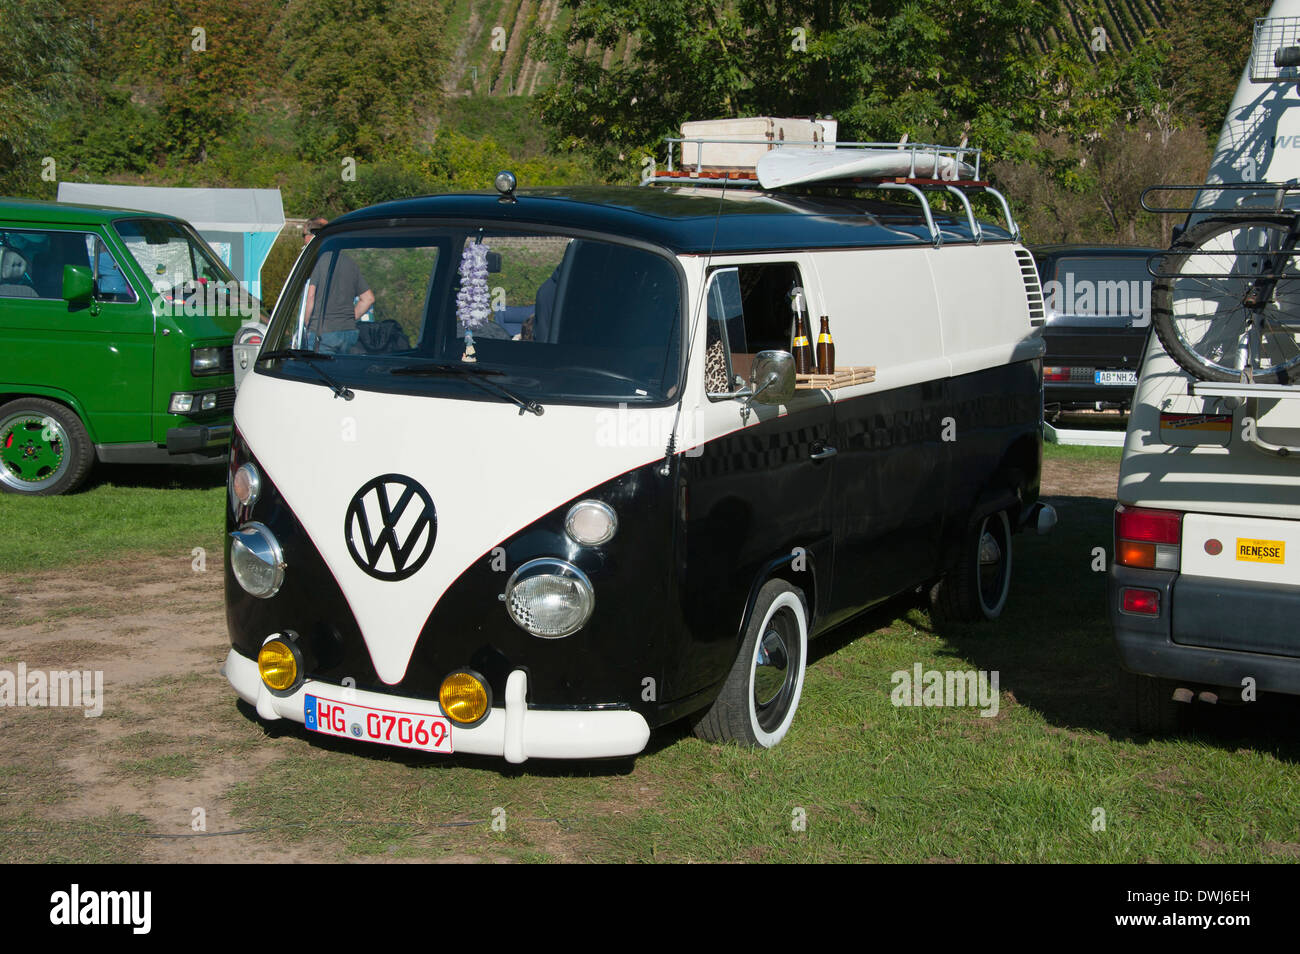 VW bus meeting, Hatzenport - Stock Image